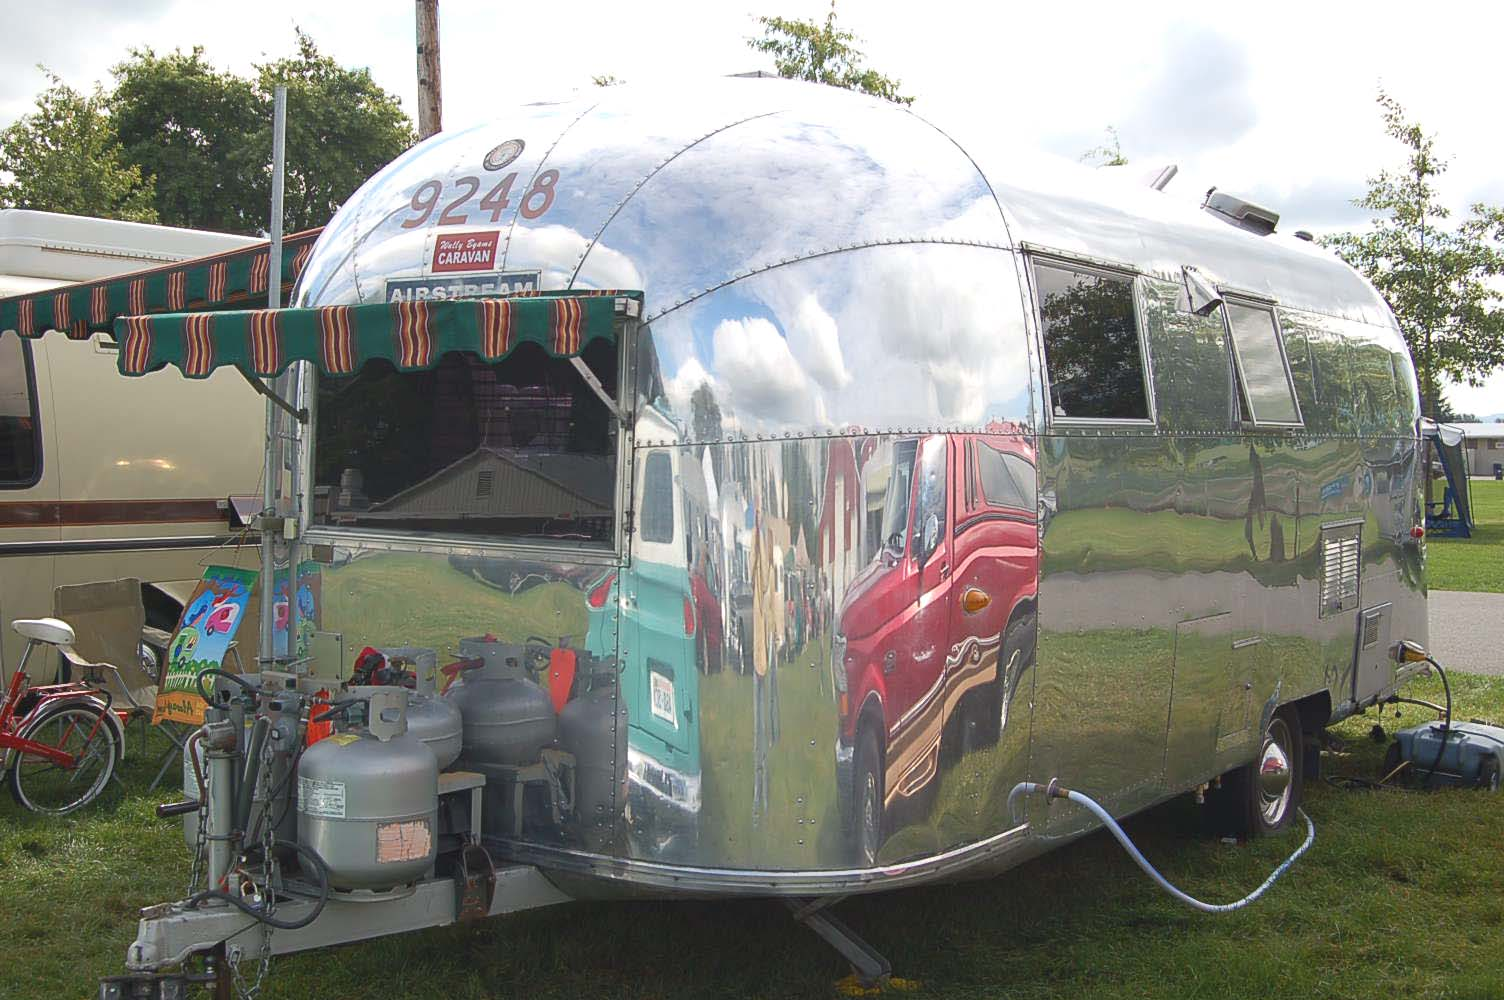 Very Clean 1963 Airstream Safari Trailer With Front Striped Awning